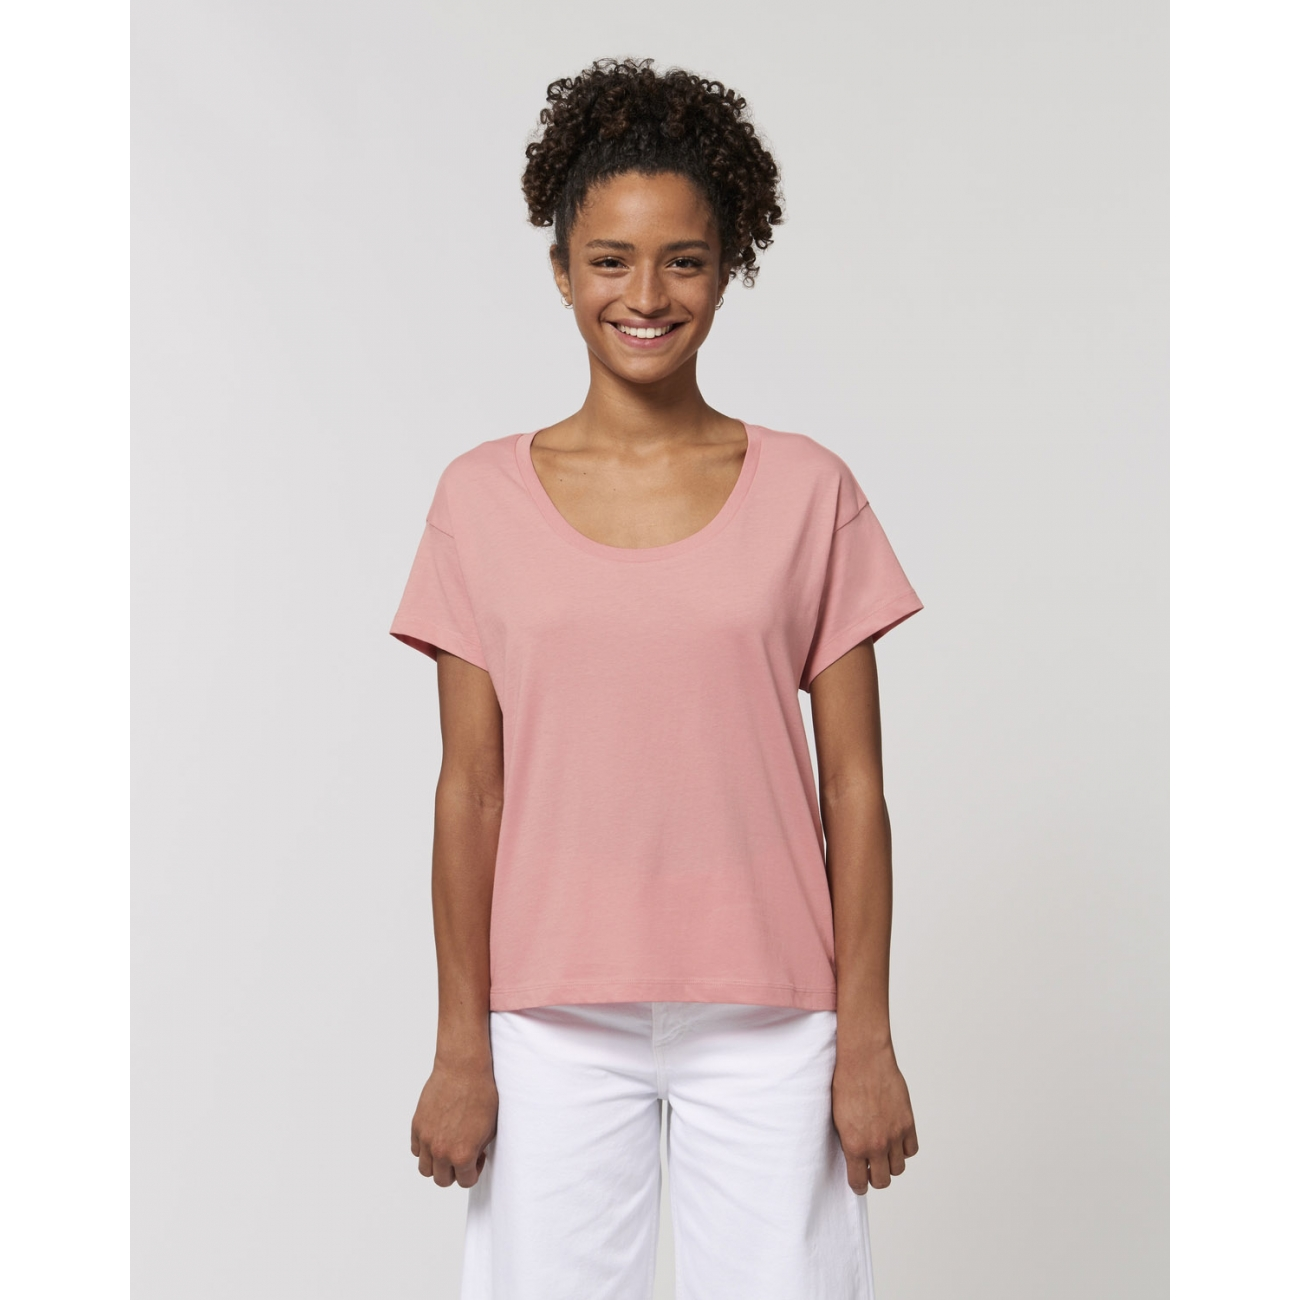 https://tee-shirt-bio.com/8765-thickbox_default/tee-shirt-pour-femme-rose-canyon-a-manches-montees-coton-bio-chiller.jpg